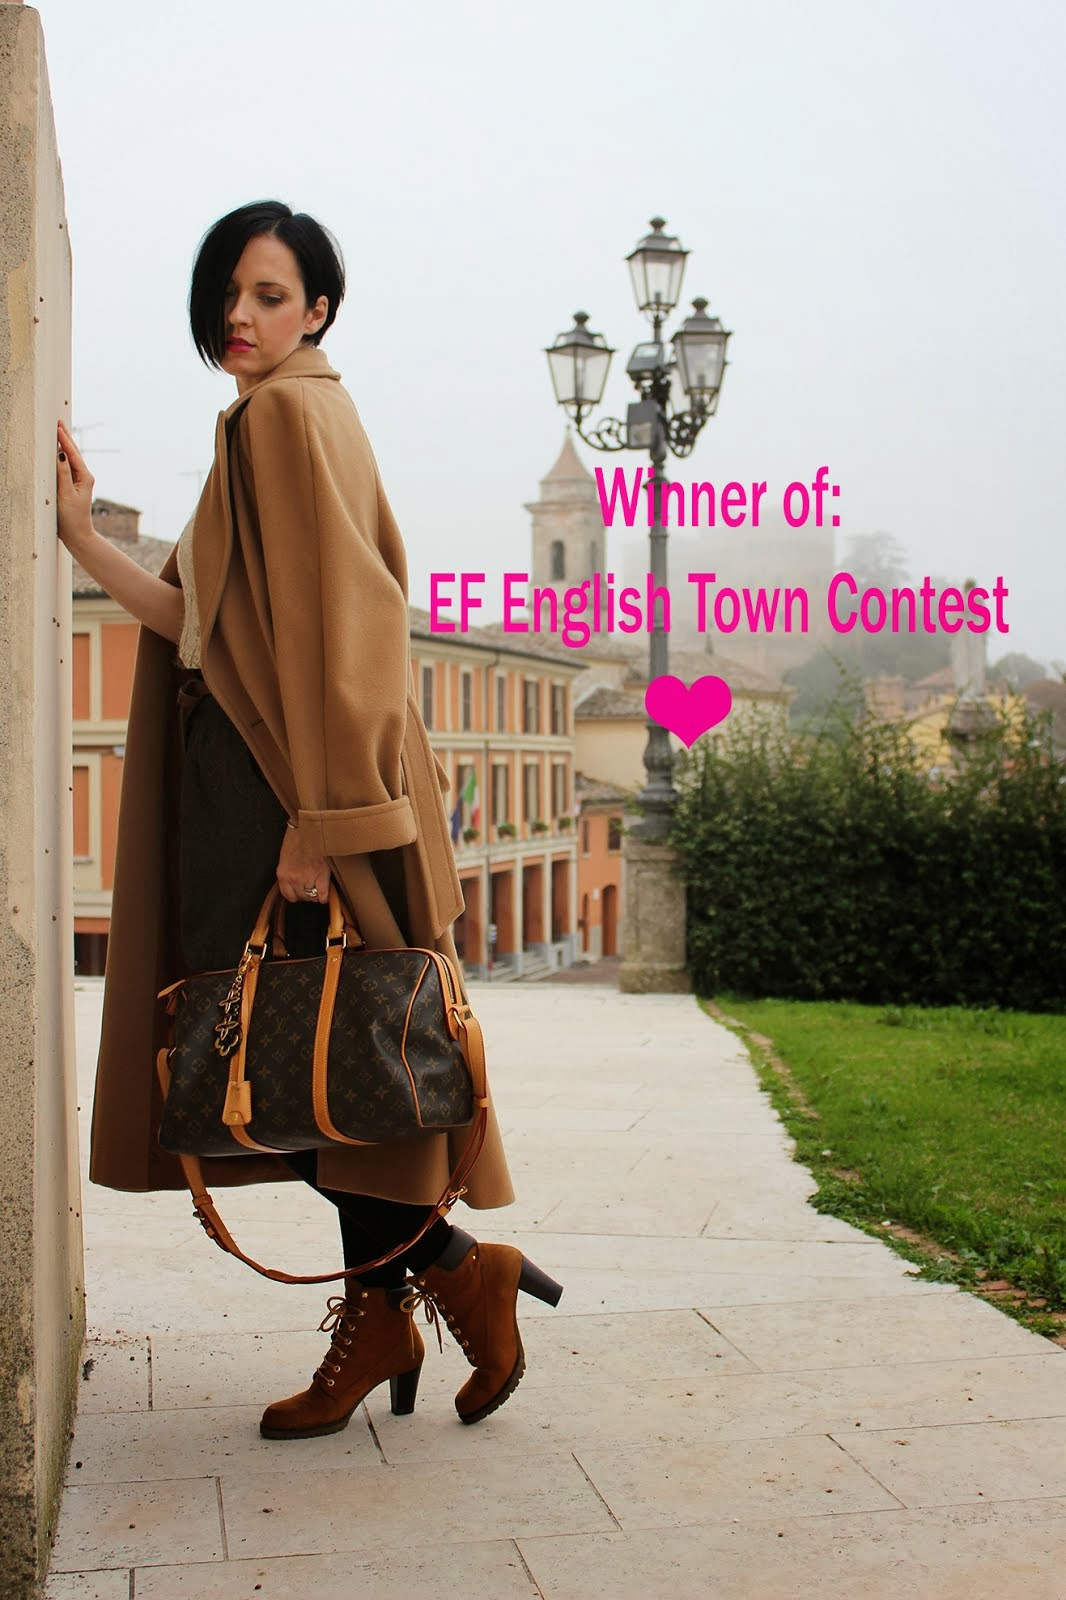 EF ENGLISH TOWN CONTEST